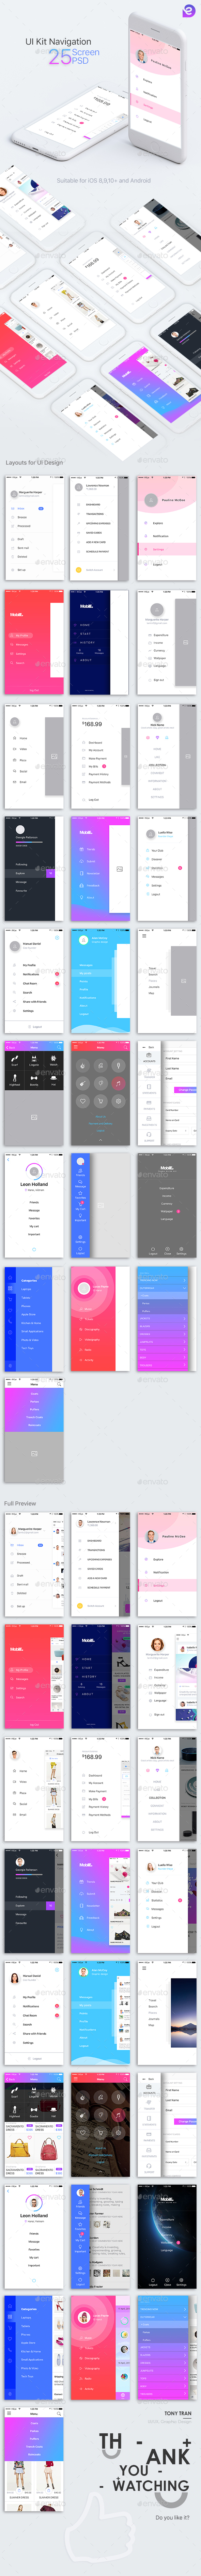 Buzz Music App UI (User Interfaces)